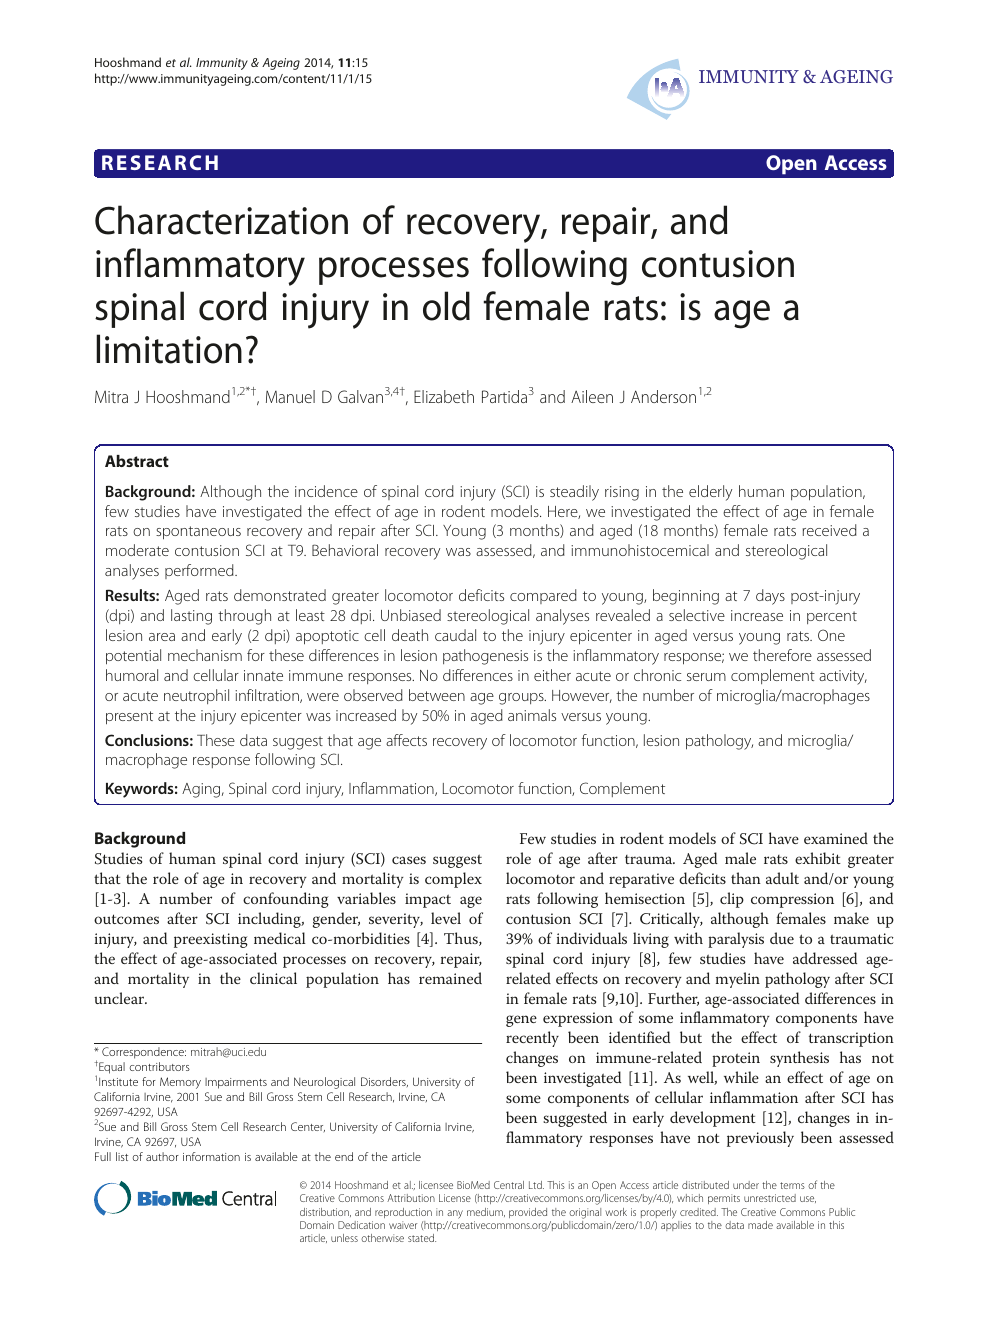 Characterization of recovery, repair, and inflammatory